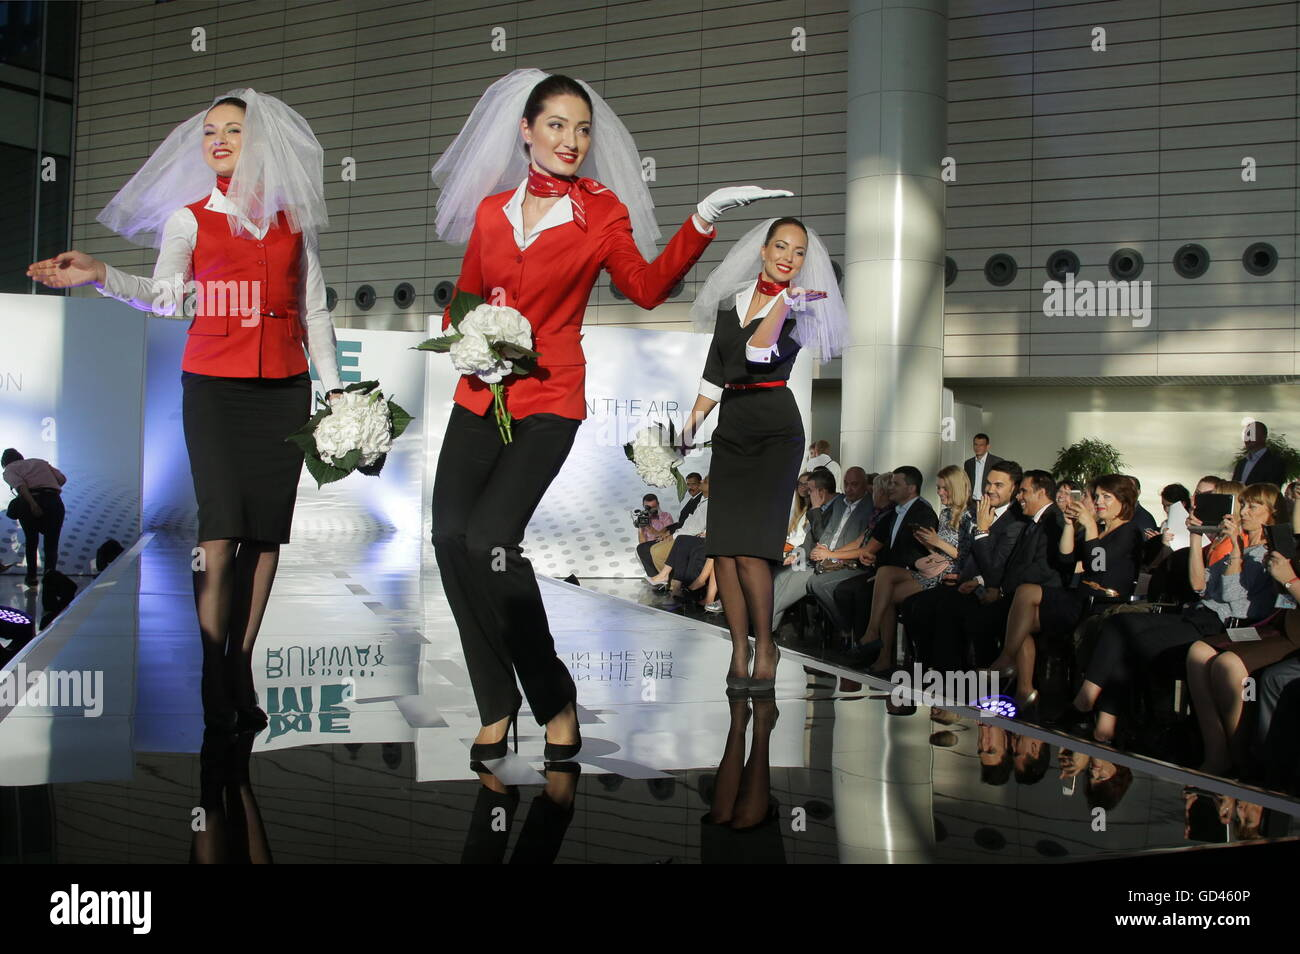 Moscow Region, Russia. 12th July, 2016. Rusline employees showcase clothes during the 2016 DME Runway fashion show - Stock Image